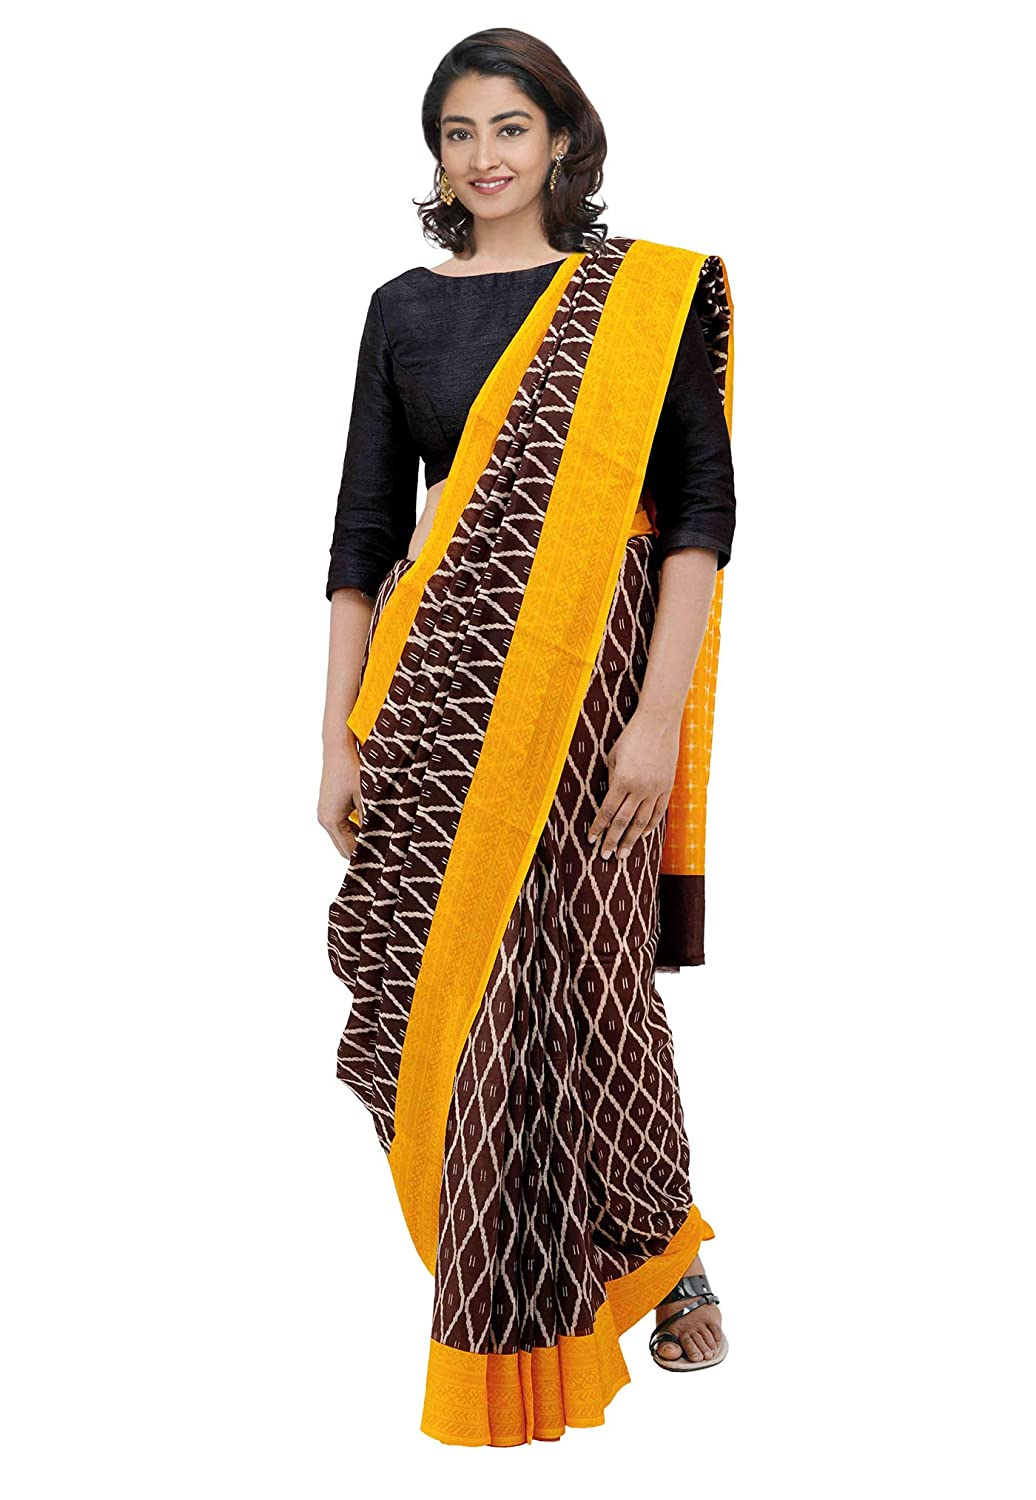 Pochampally Best Saree (Telangana)